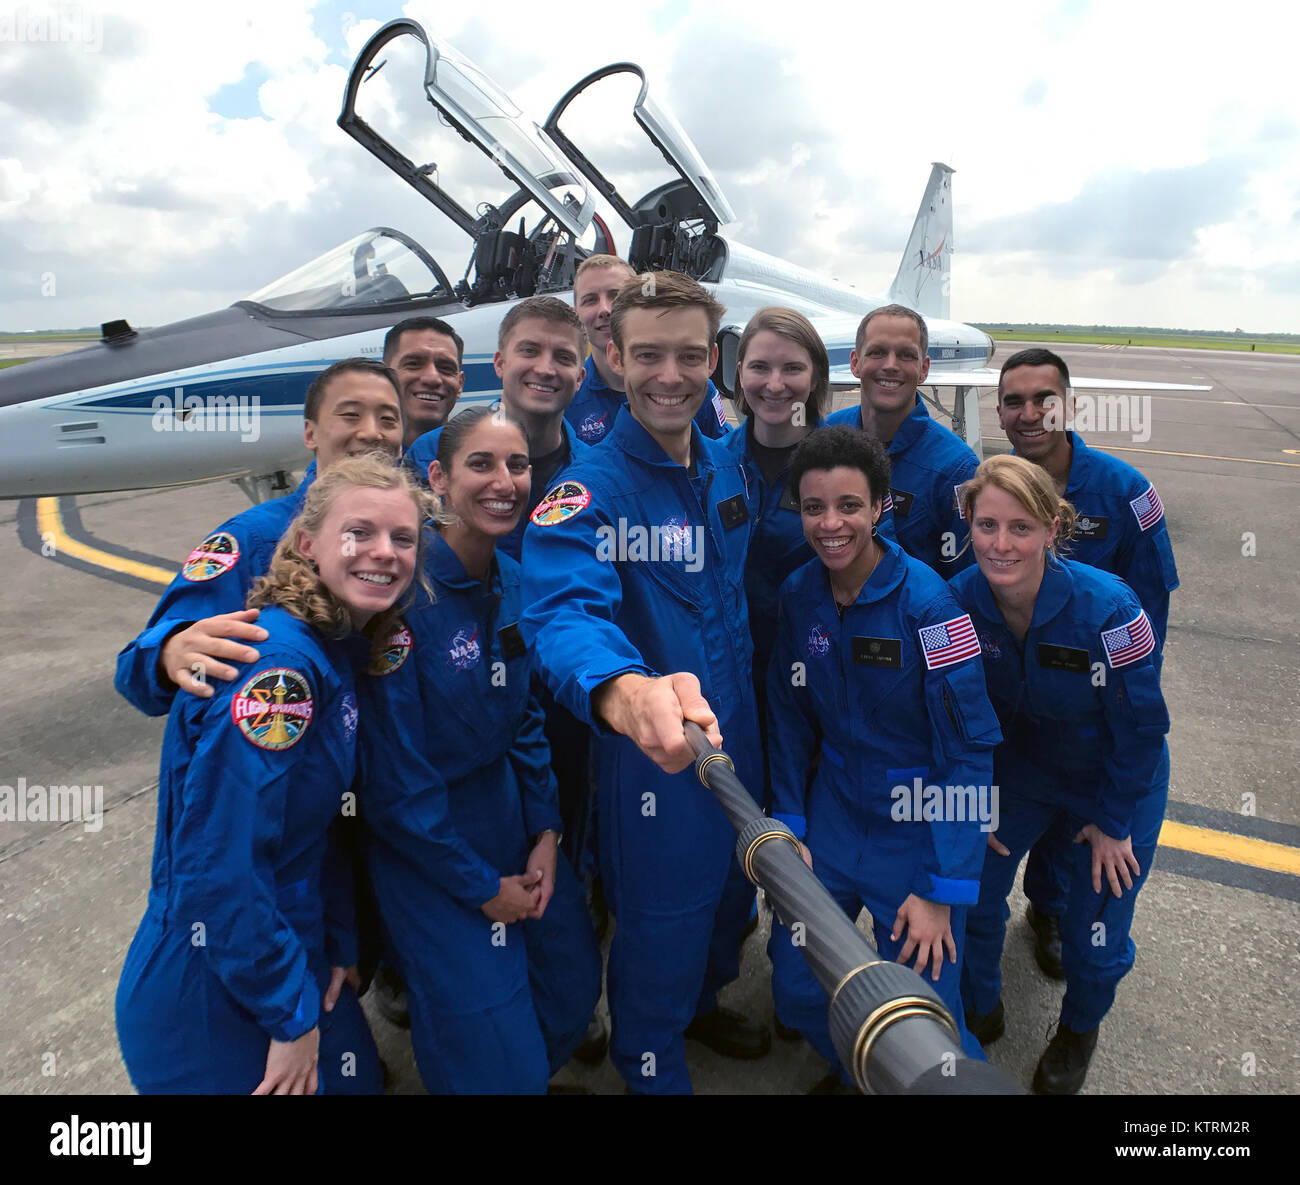 NASA's 2017 astronaut candidates stop to take a group photo while getting fitted for flight suits at Ellington - Stock Image